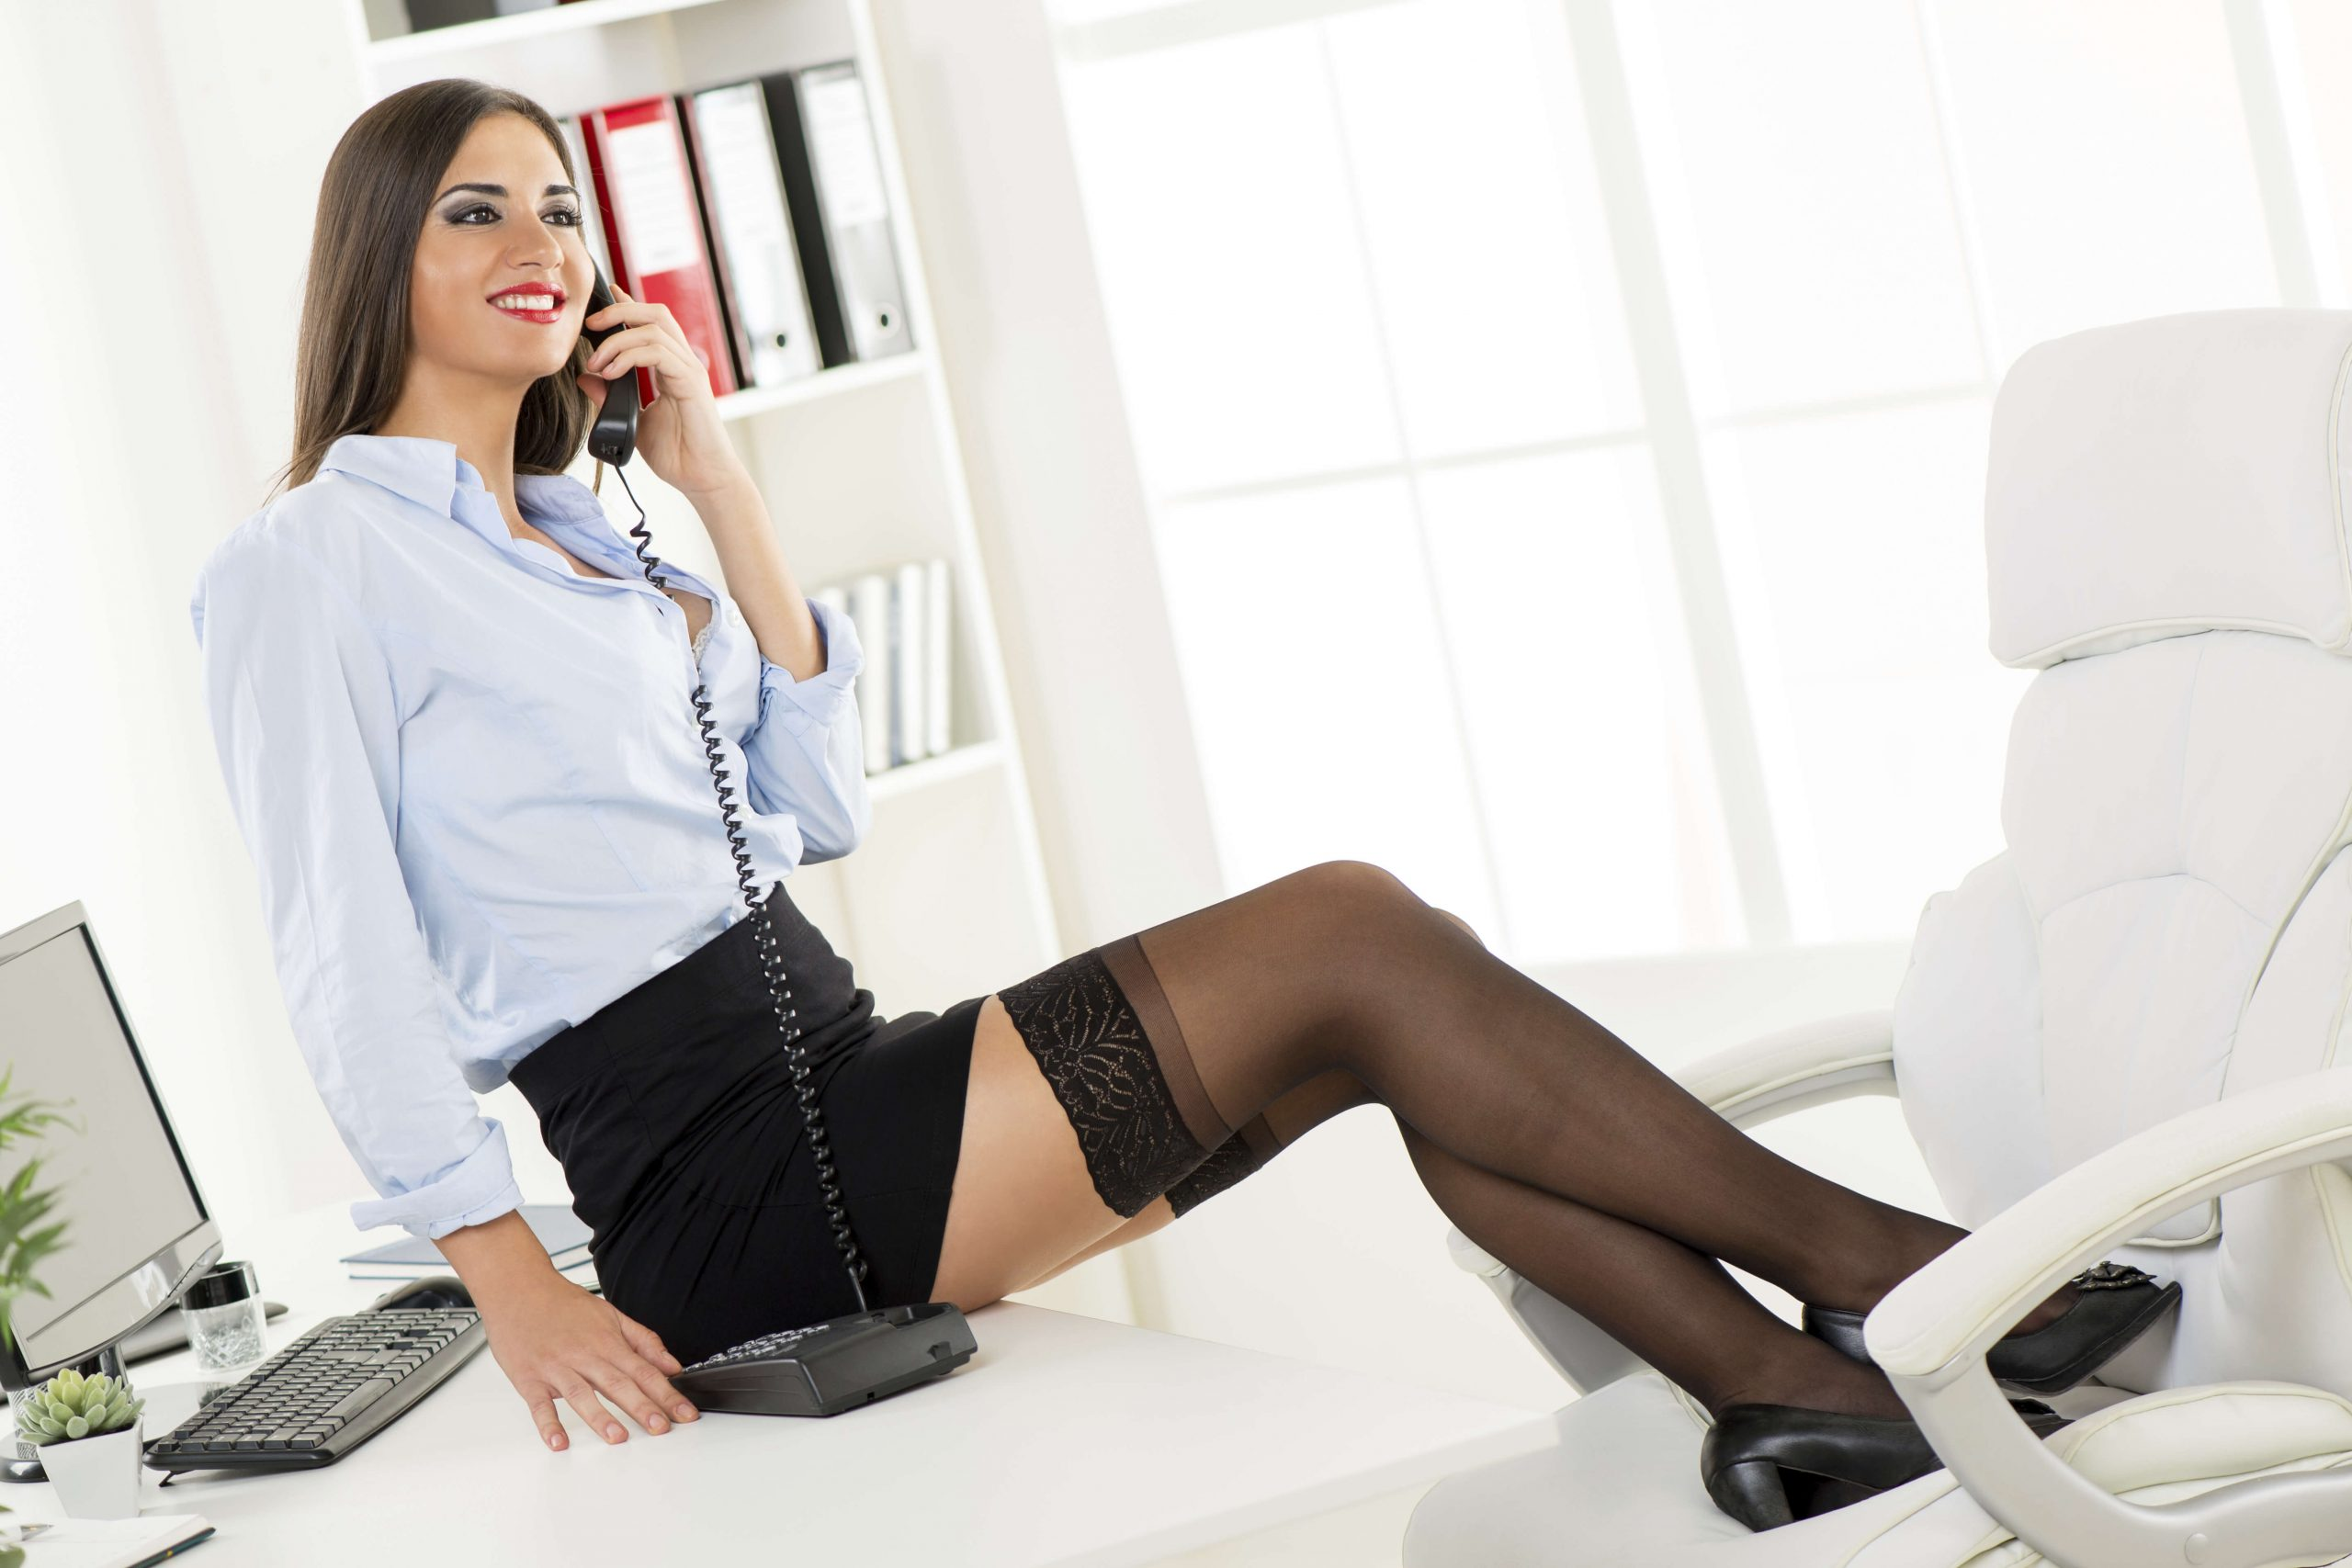 How To Stay Focused At Work When The New Girl Is Smoking Hot